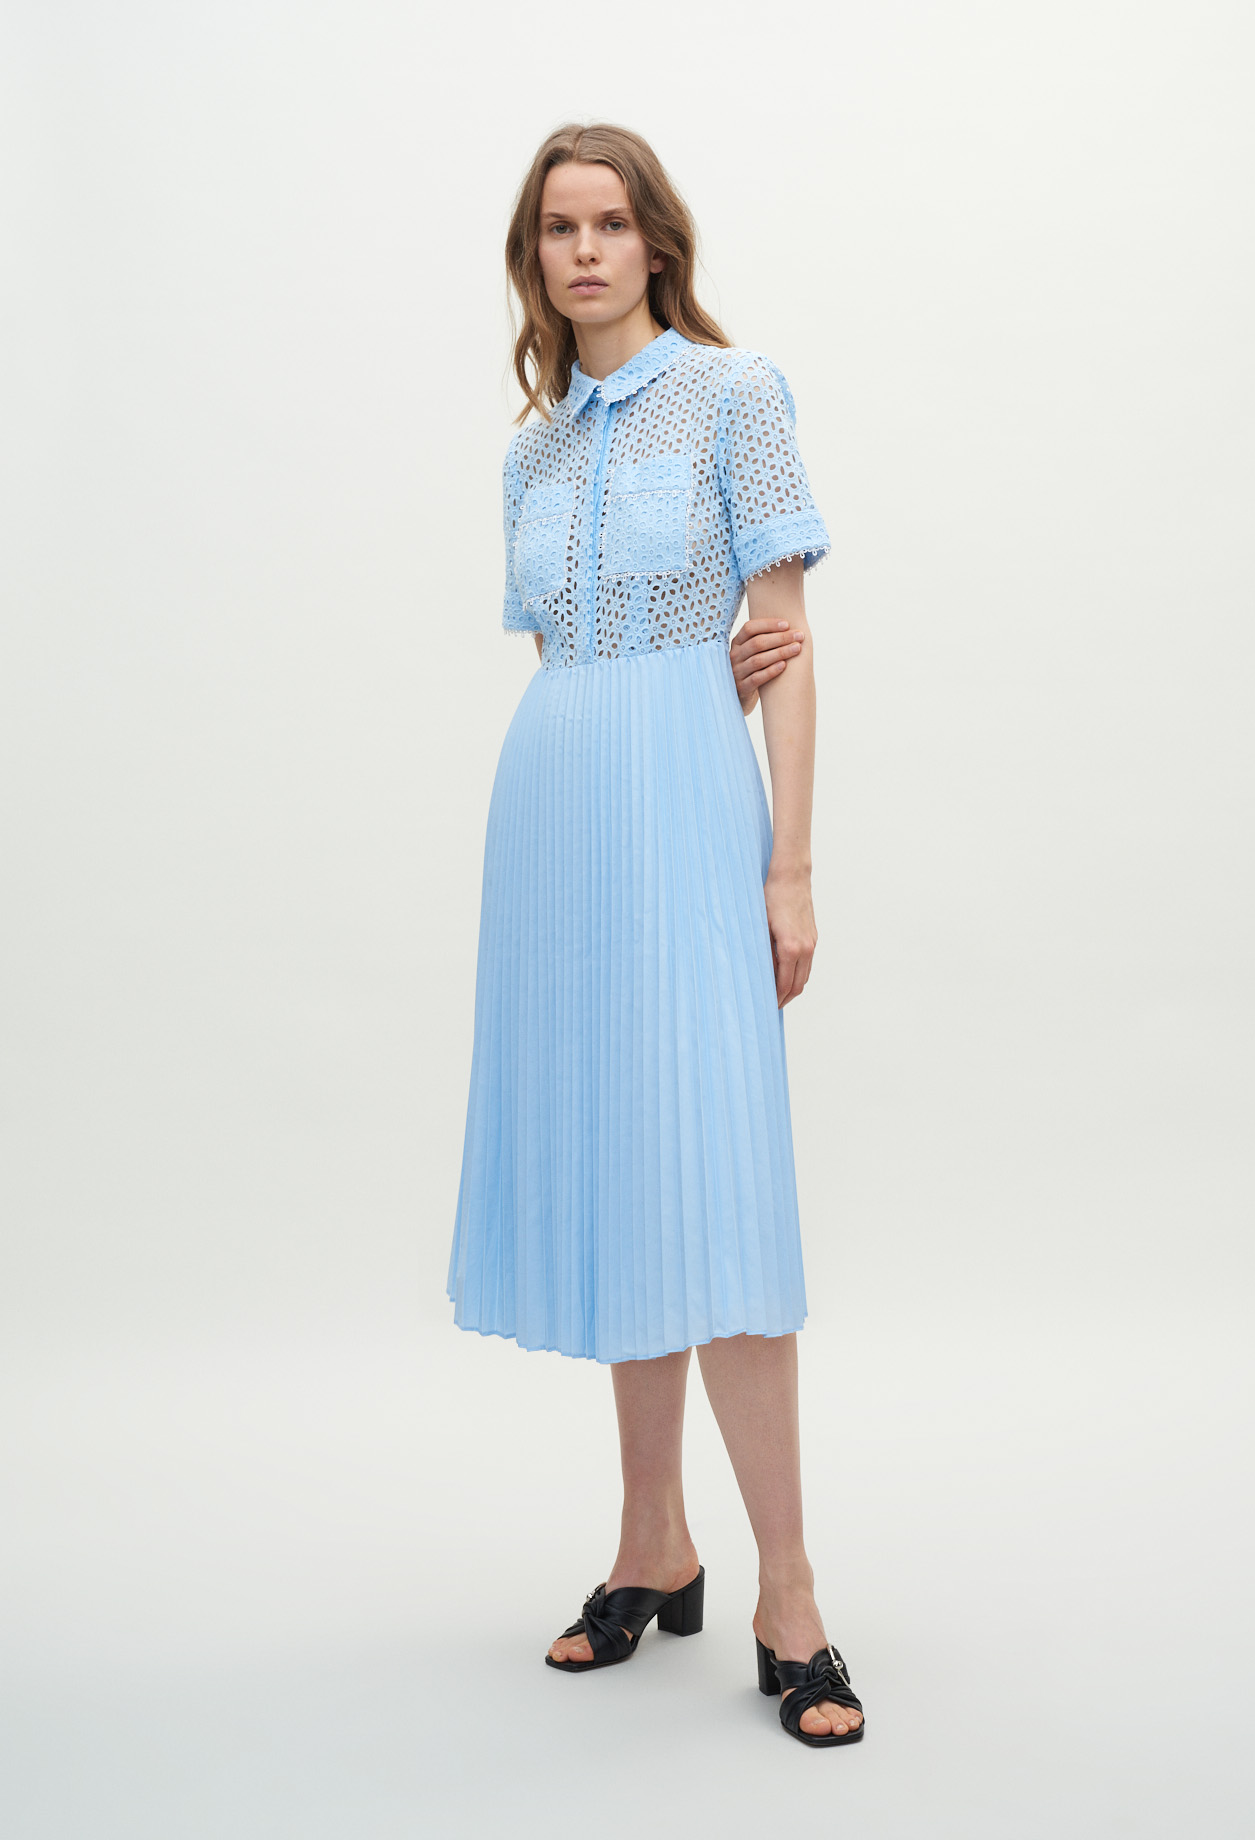 Pleated azure dress